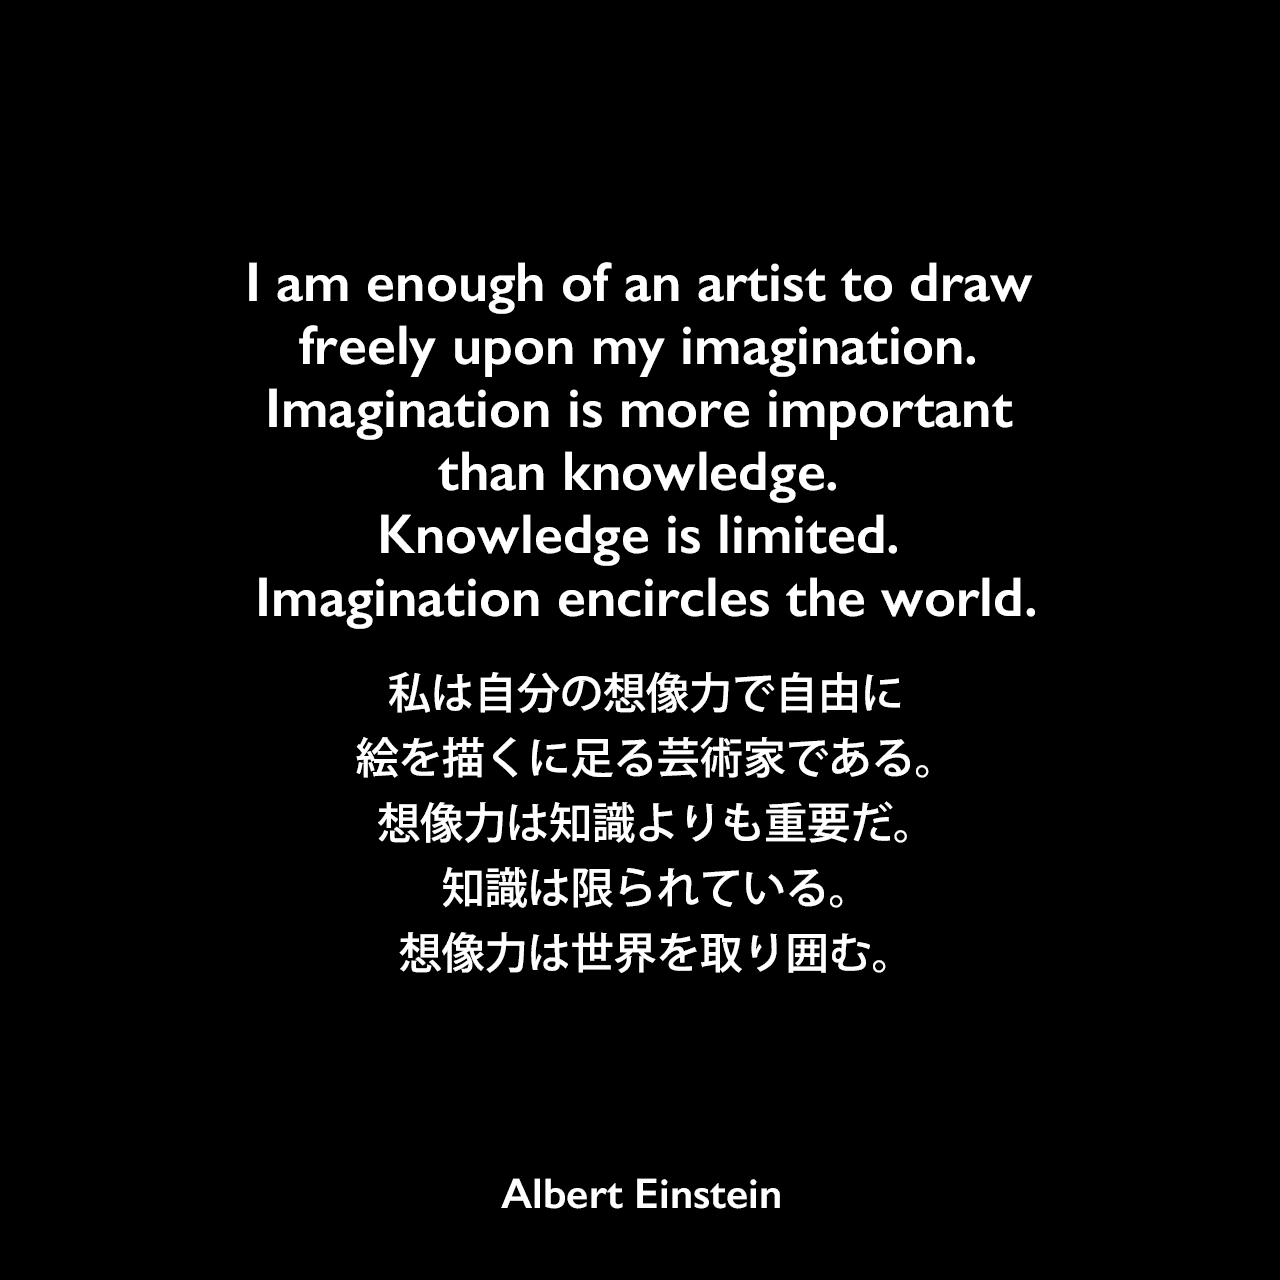 I am enough of an artist to draw freely upon my imagination. Imagination is more important than knowledge. Knowledge is limited. Imagination encircles the world.私は自分の想像力で自由に絵を描くに足る芸術家である。想像力は知識よりも重要だ。知識は限られている。想像力は世界を取り囲む。- ジョージ・シルヴェスター・ヴィエレックとのインタビュー(1929年)よりAlbert Einstein